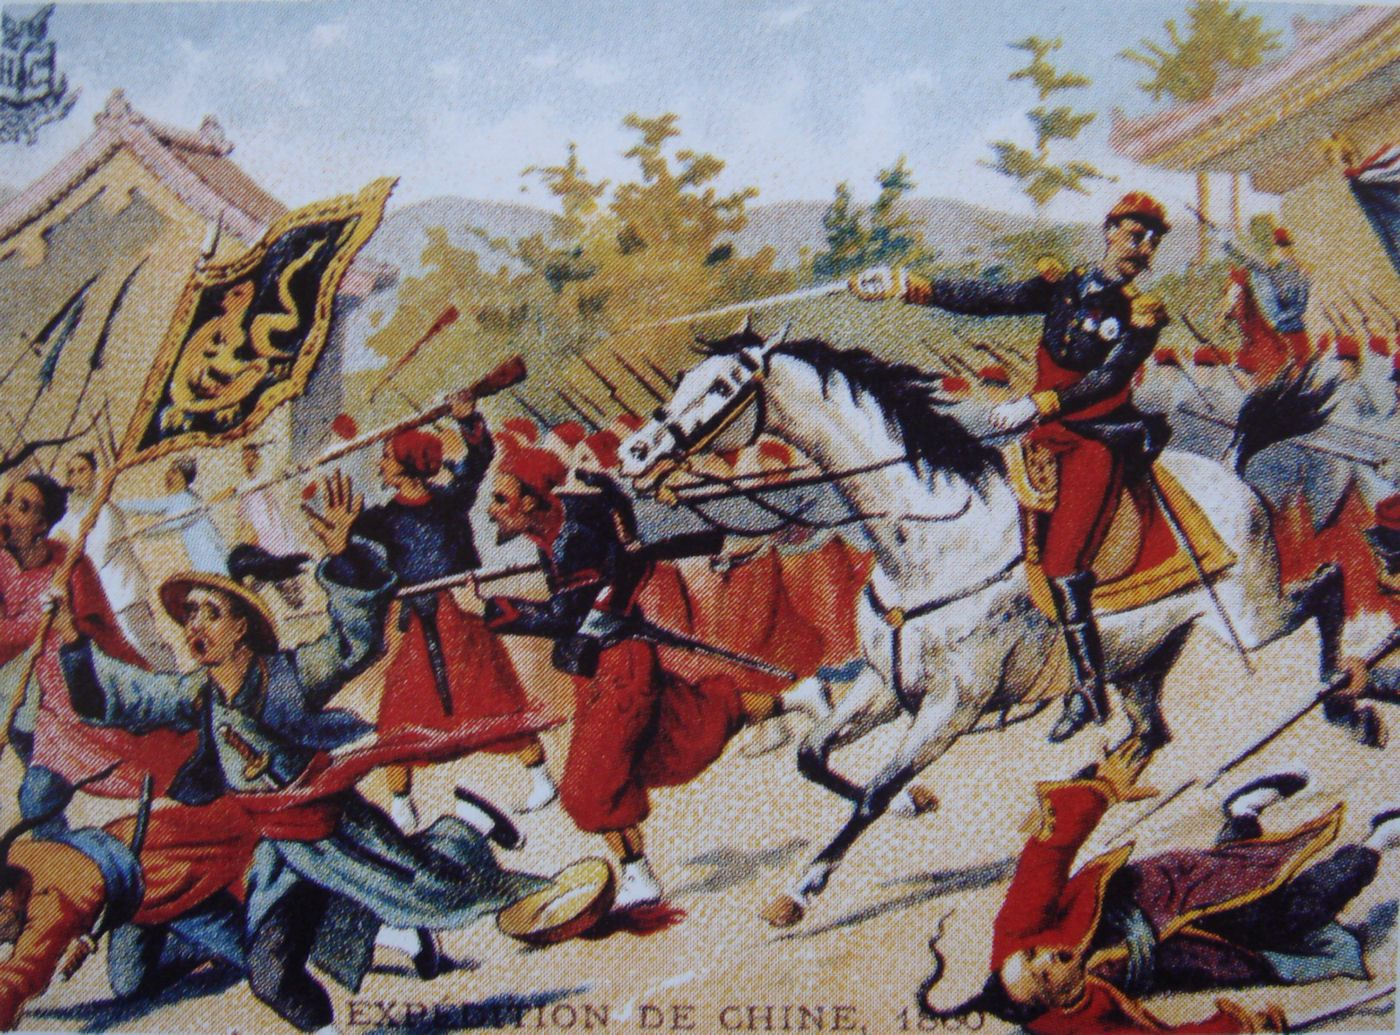 Napoleon Iii Wikipedia Blade Trailer Wiring Http Calgarytrailerscom Indexfiles Page446 Cousin Montauban Leading French Forces During The Anglo Expedition To China